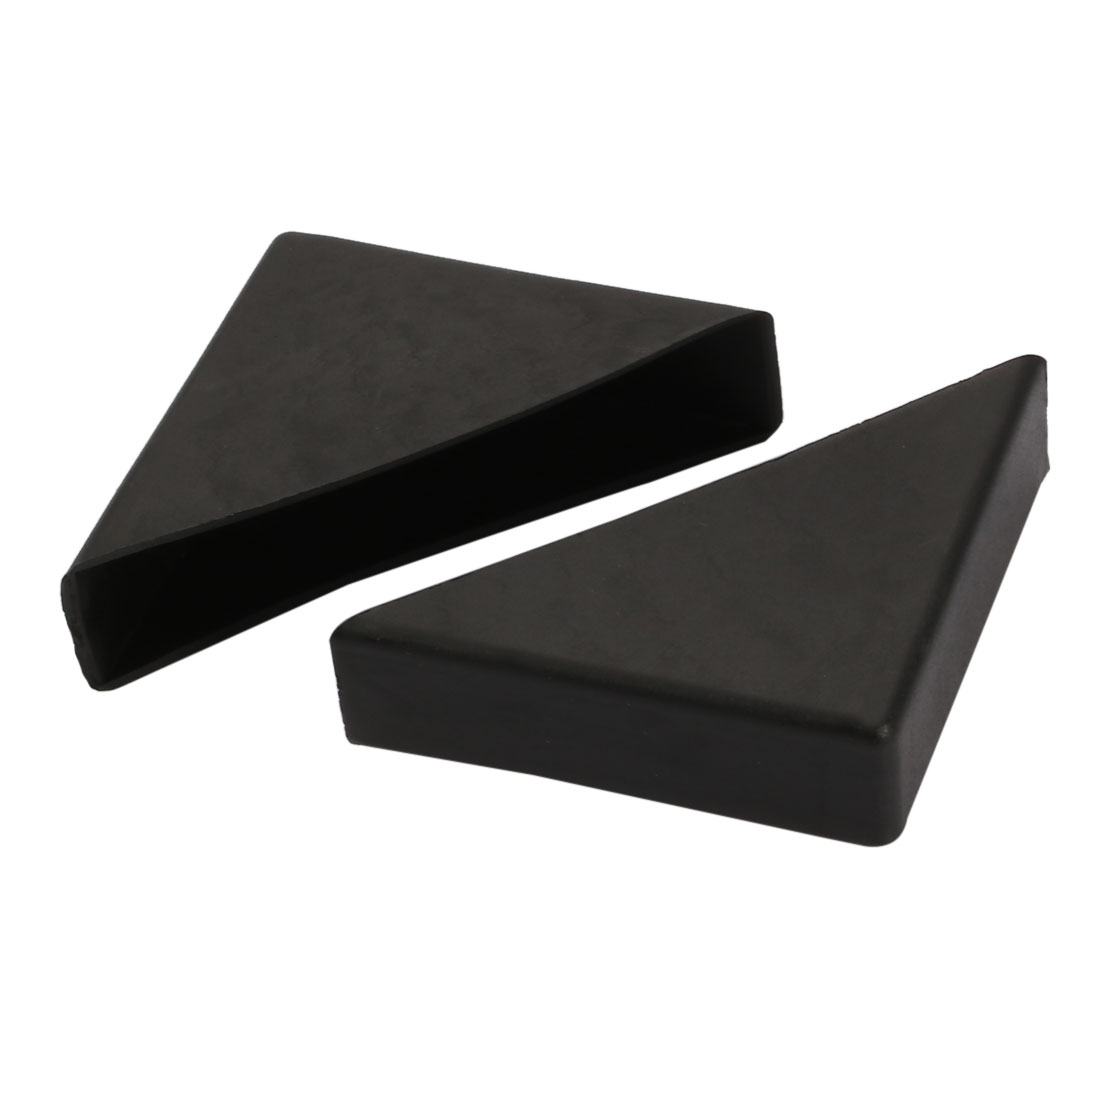 2pcs 55mmx55mm Plastic Table Desk Corner Guard Protector Fit for 15mm Thickness